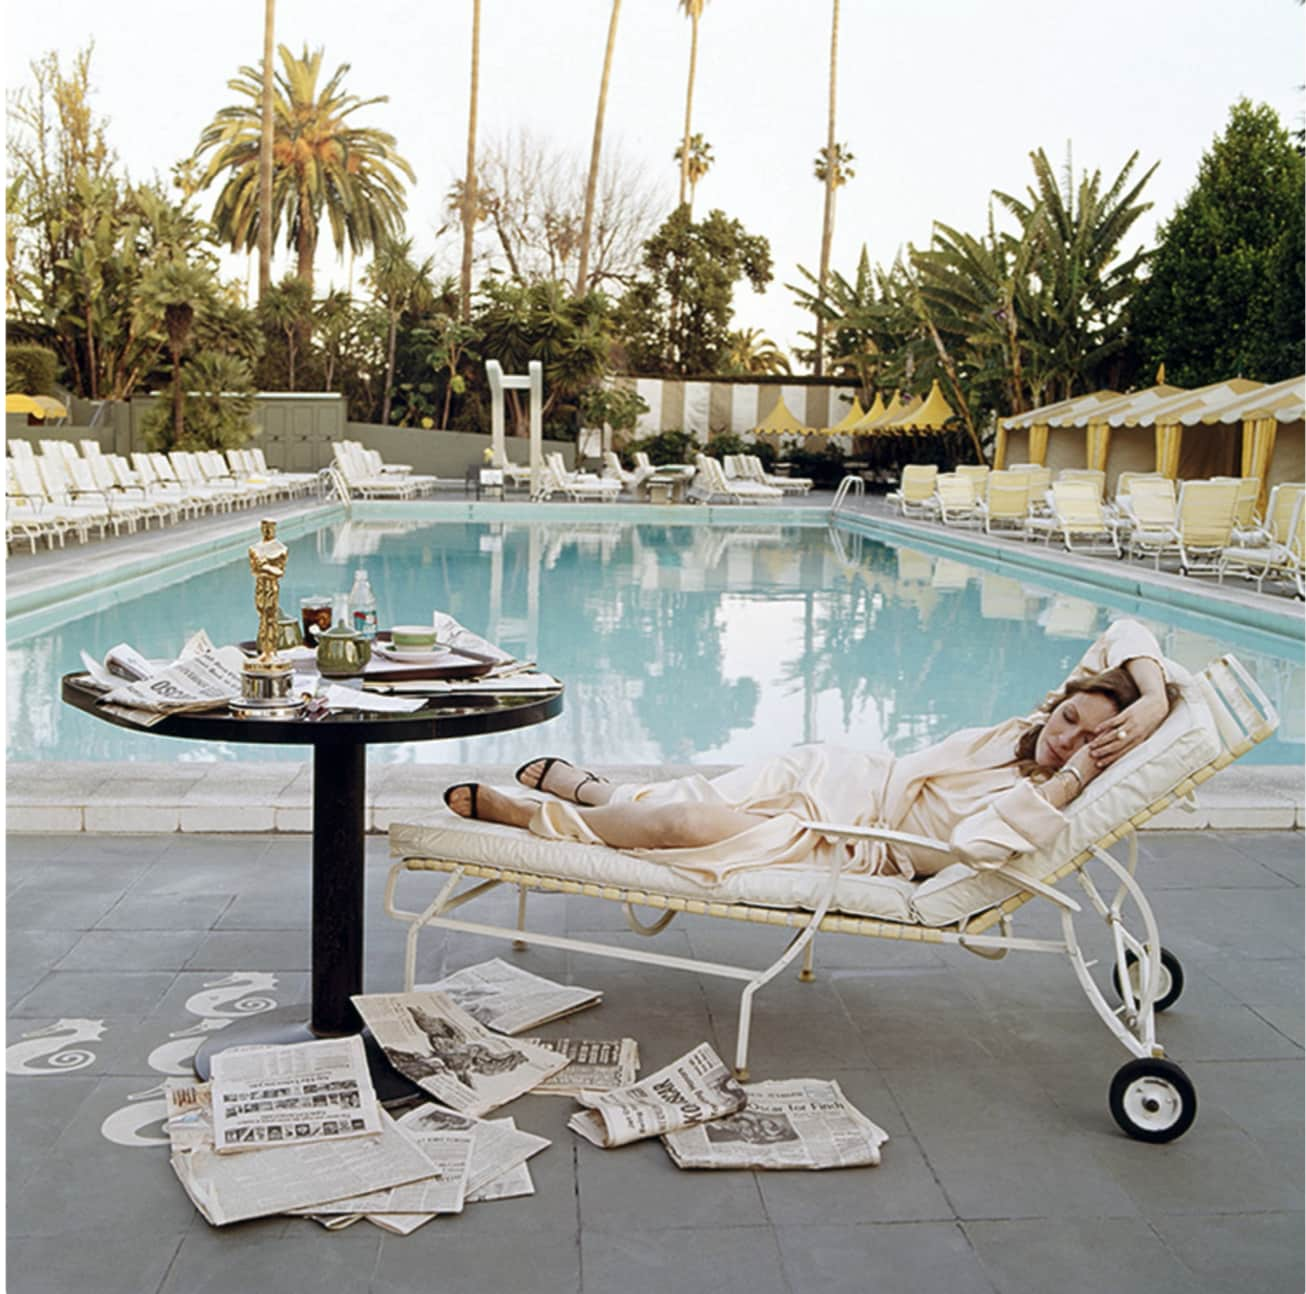 Terry O'Neill, Faye Dunaway at the Pool, 1977